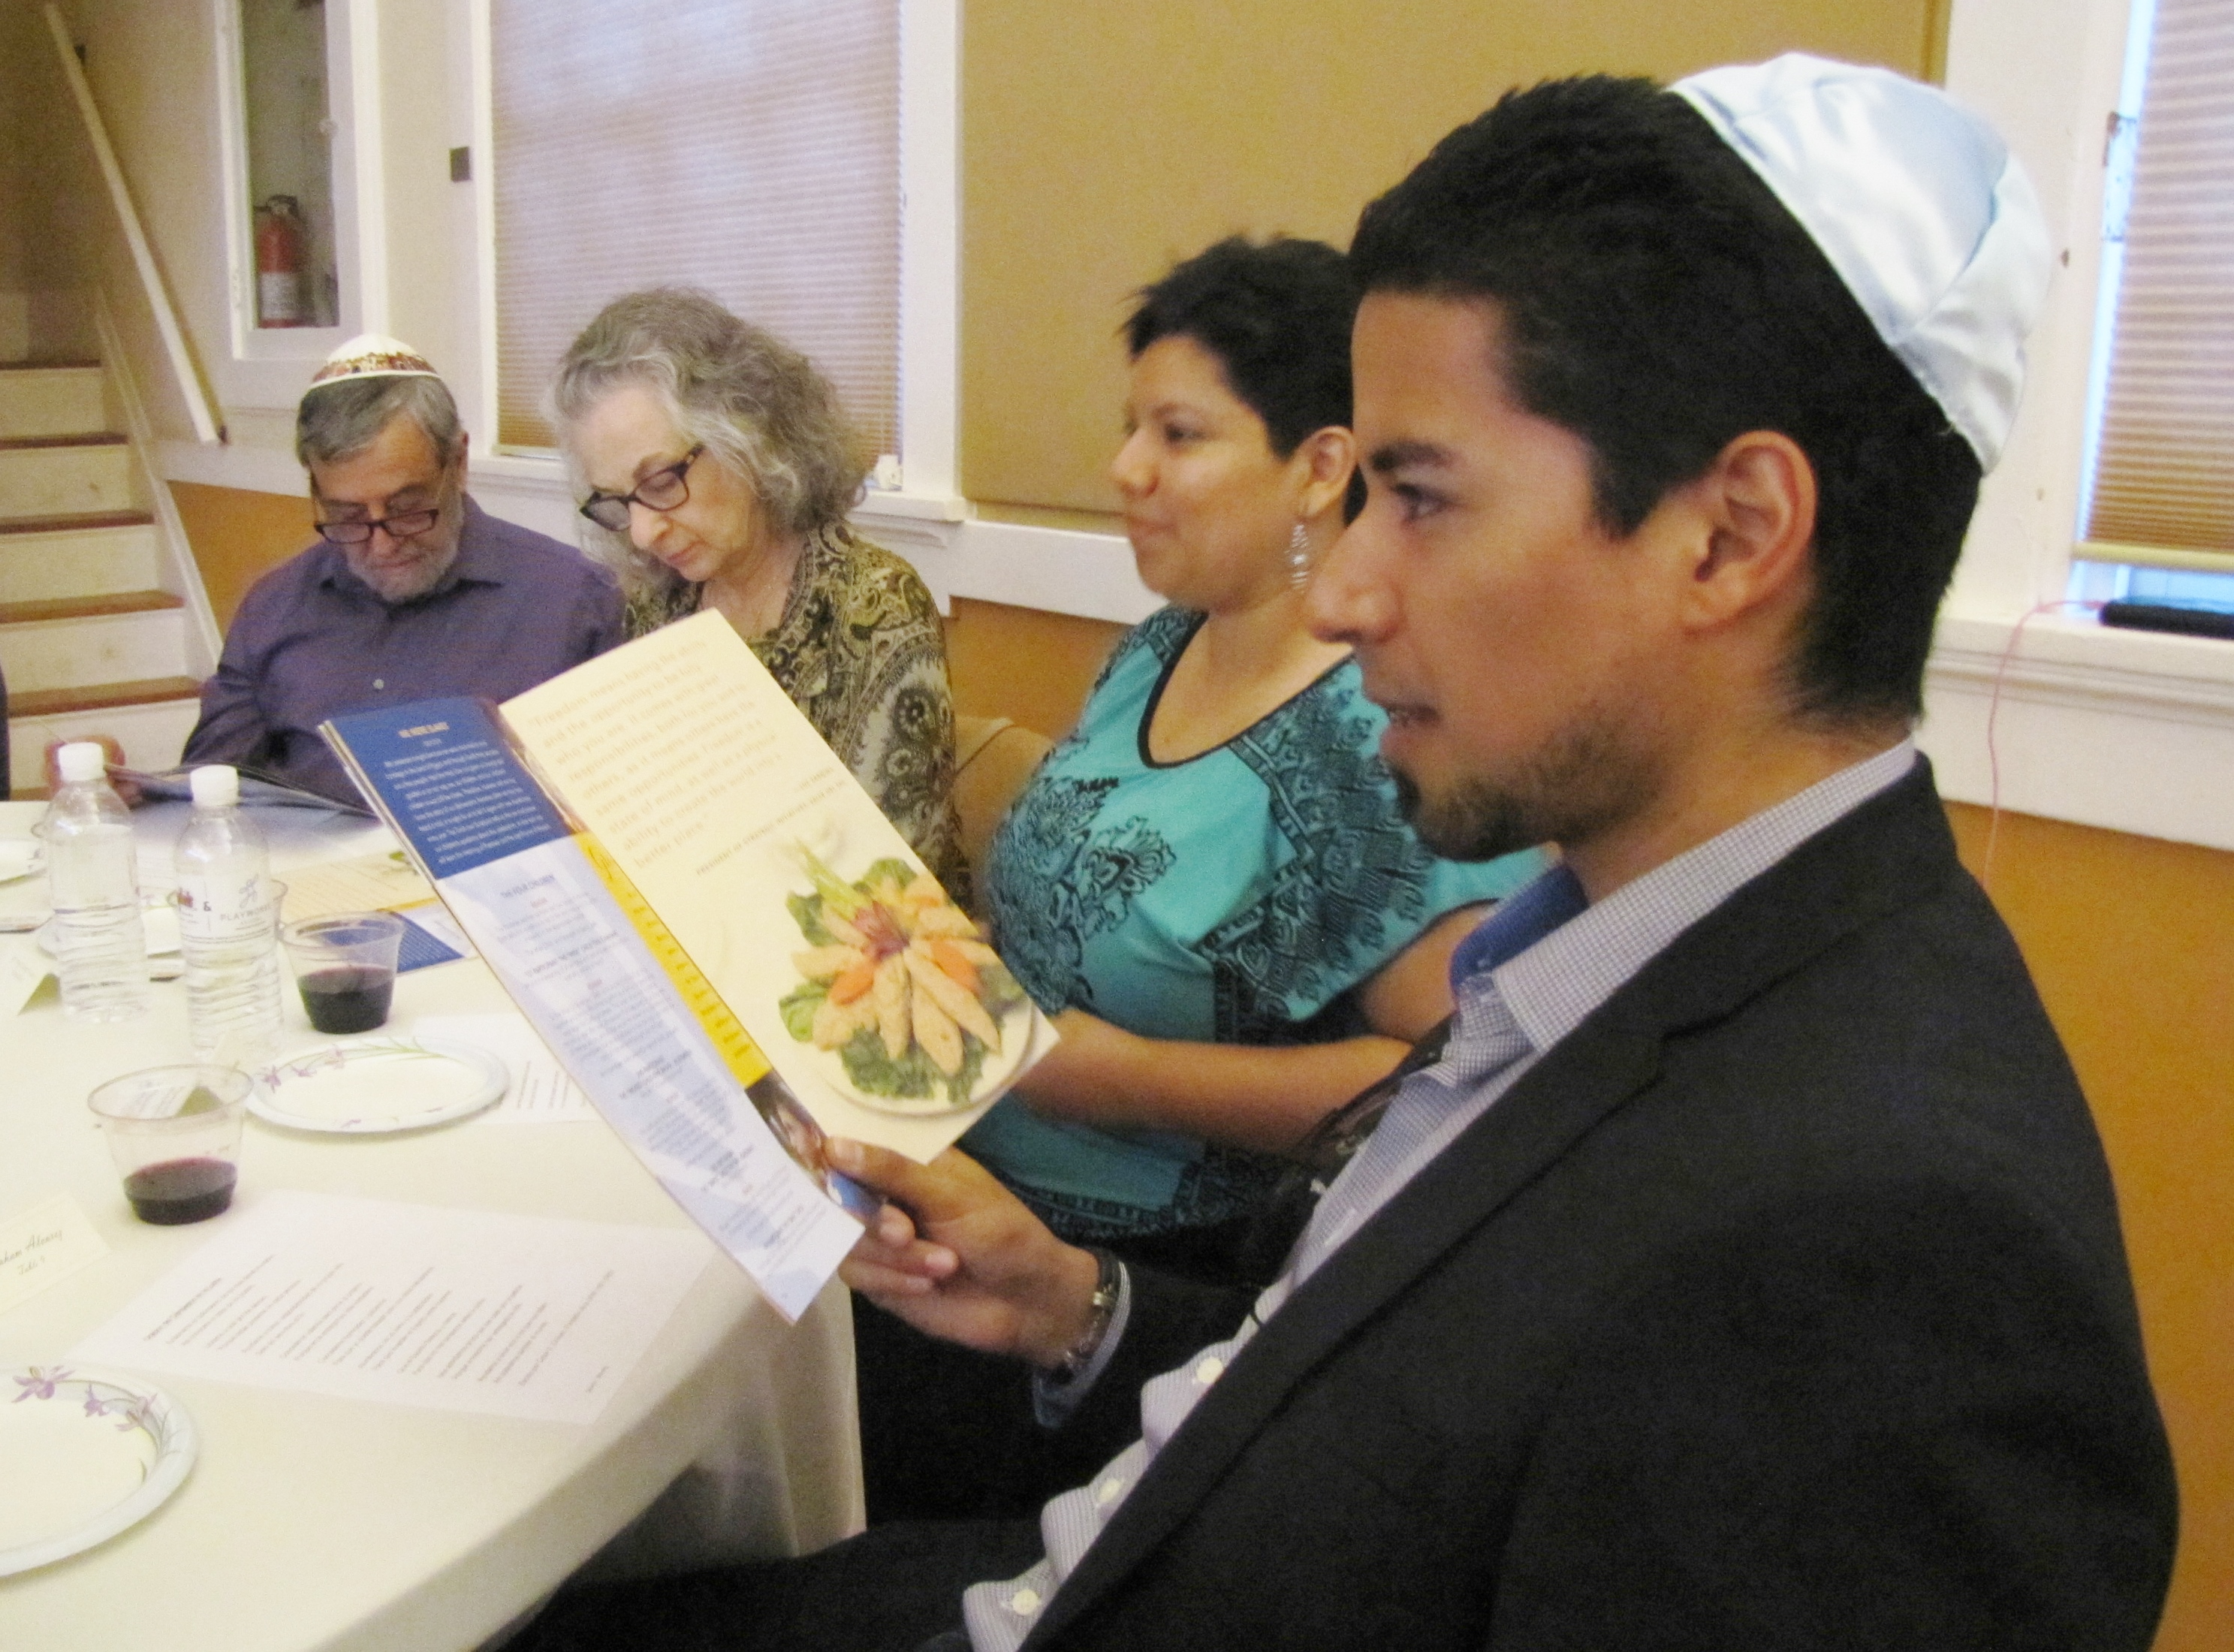 Tradition Brings Together Jews and Latinos For Passover | KJZZ